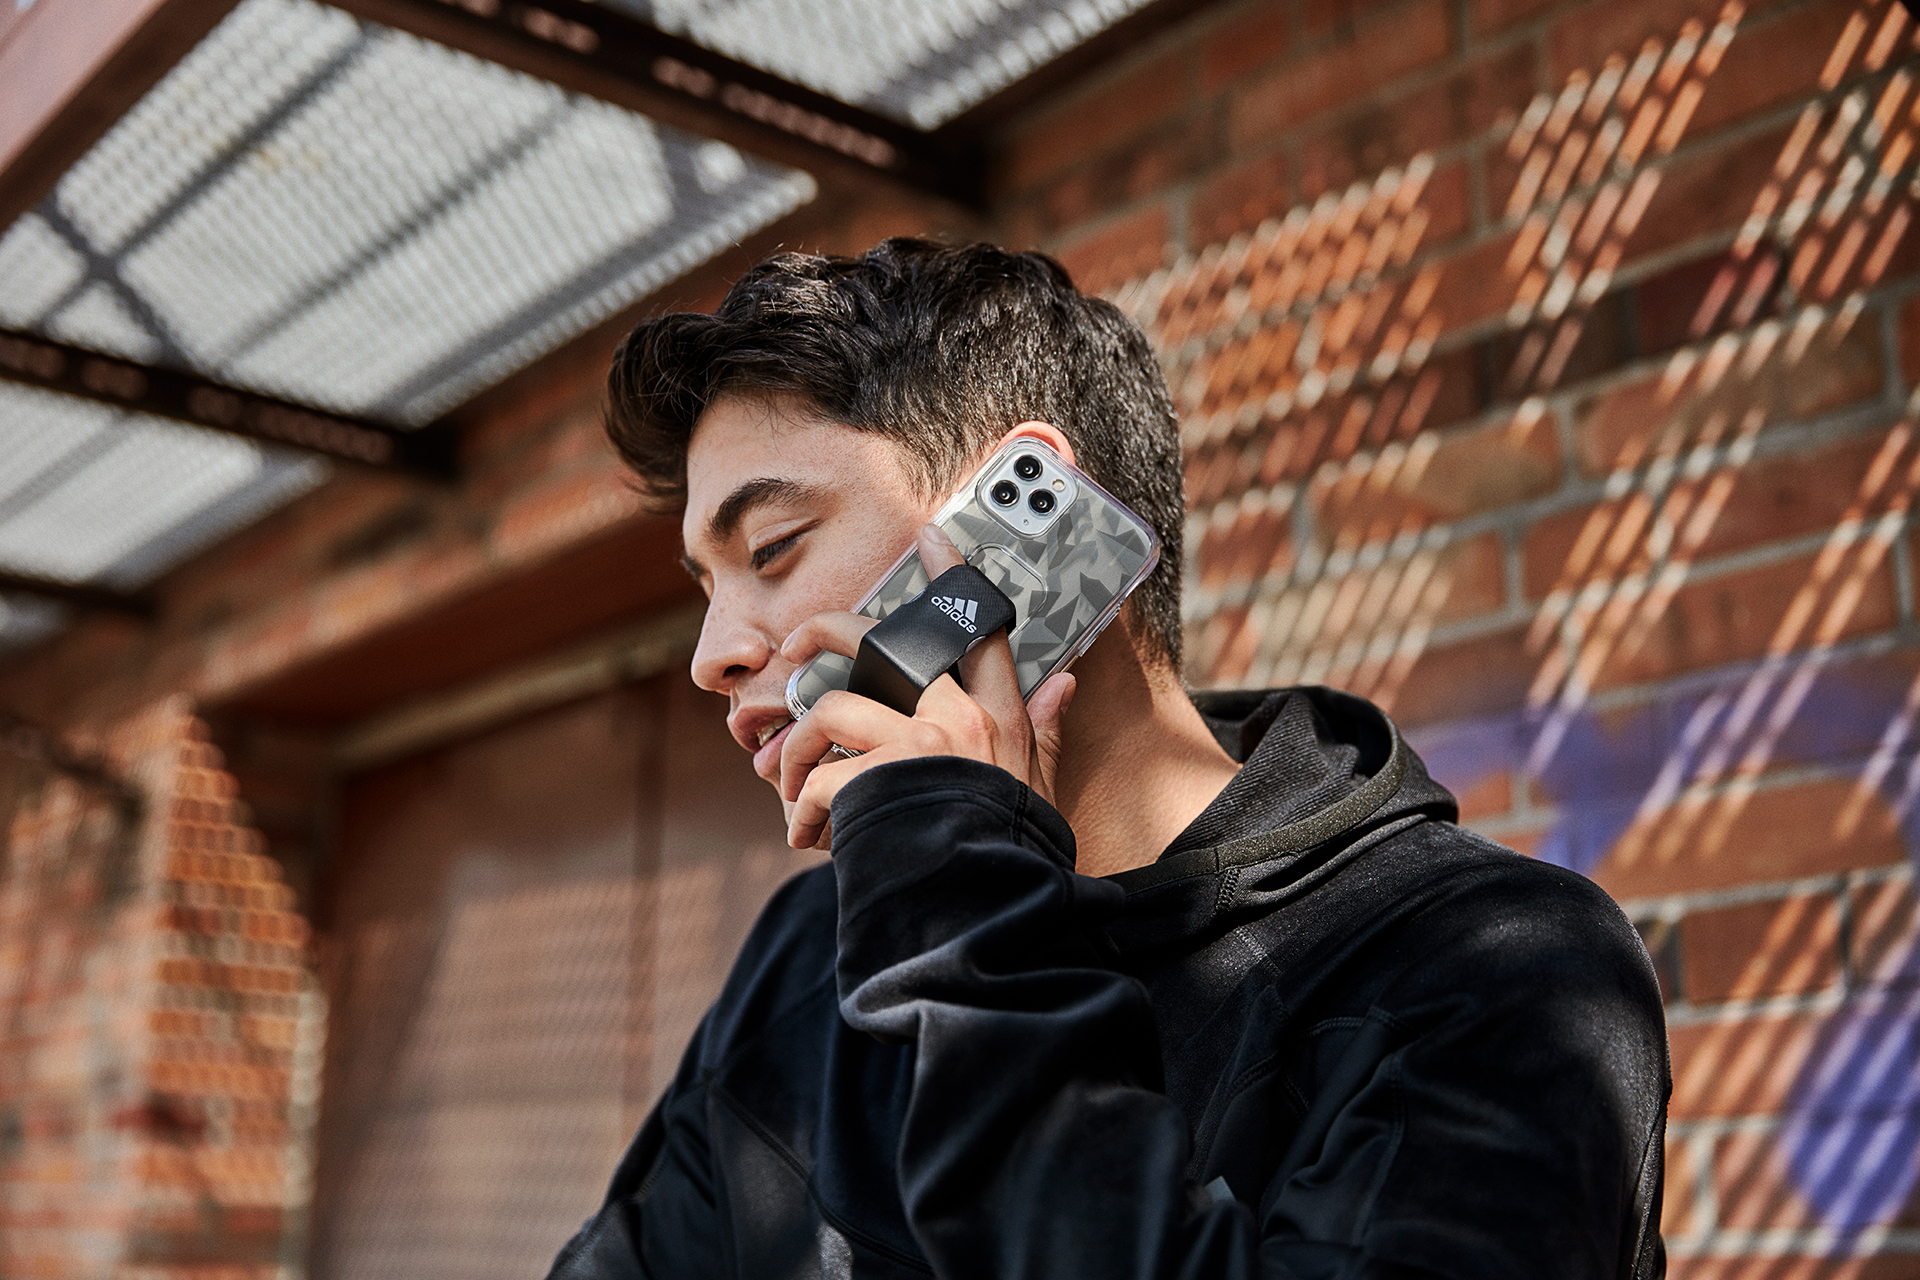 adidas FW20 cases: now available for iPhone 12 series